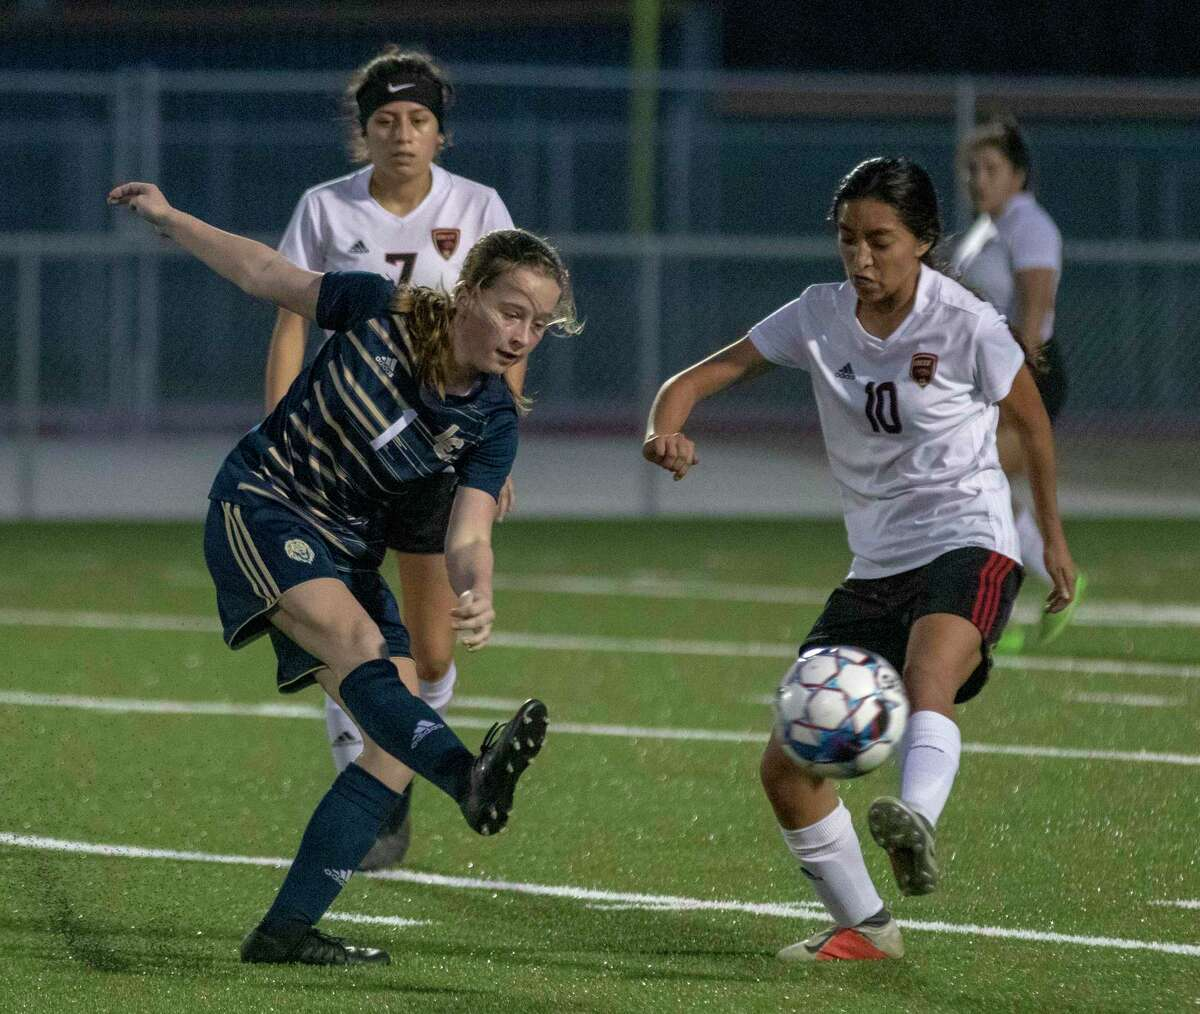 Caney Creek midfielder Julie Mendoza (10) was a first-team all-district selection last season.